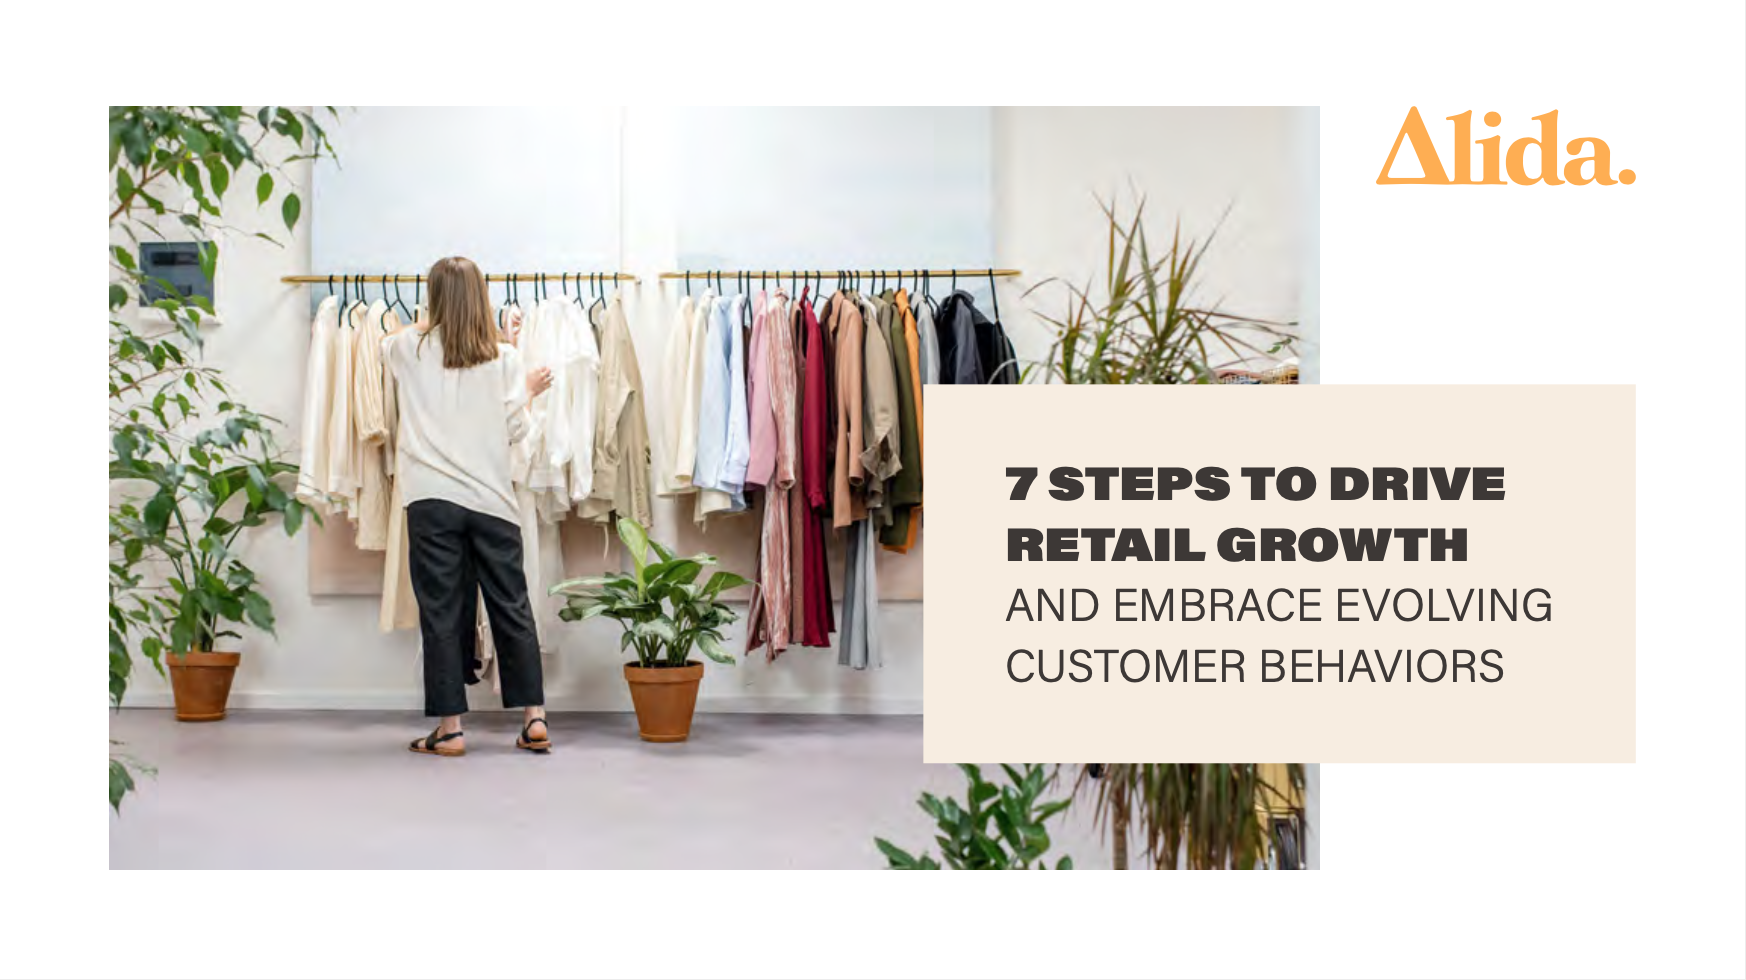 7 Steps to Drive Retail Growth-1